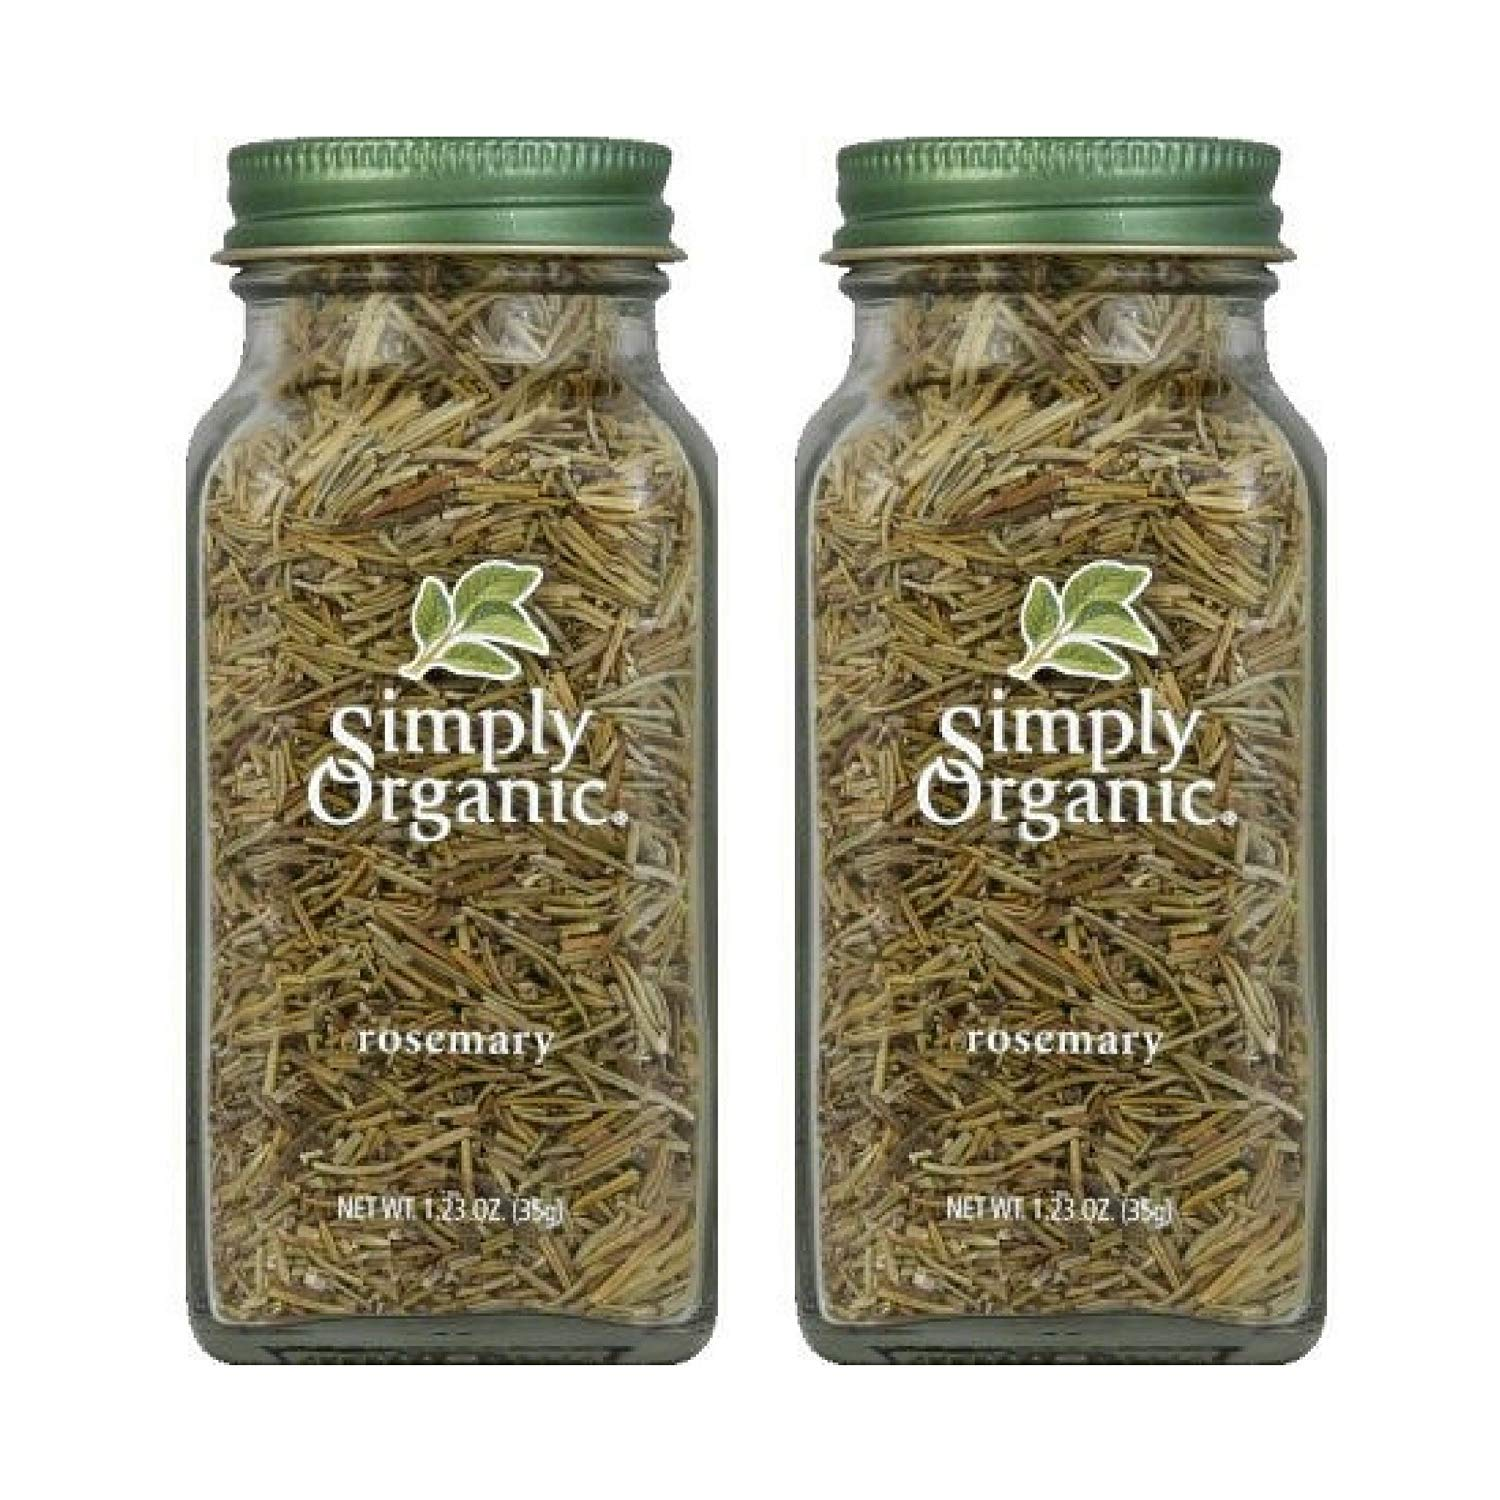 Simply Organic Rosemary, 1.23 OZ - Pack of 2